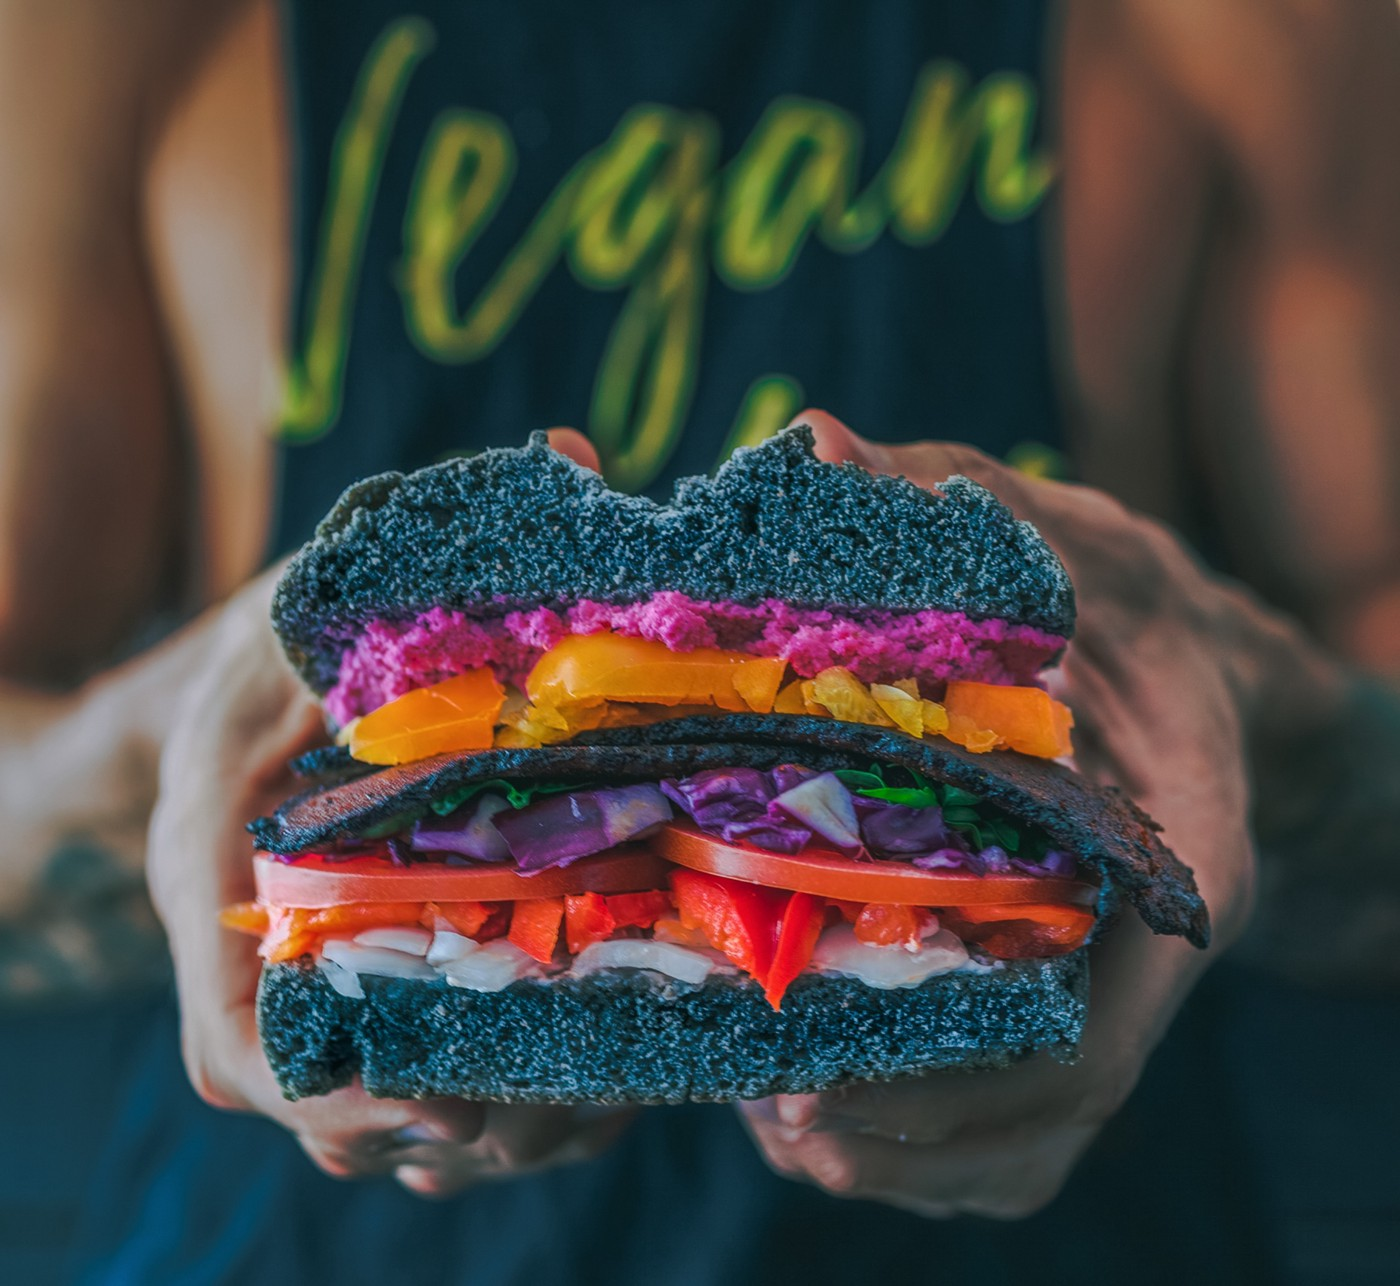 A sandwich with somewearing a t-shirt with the word vegan on it in the background.